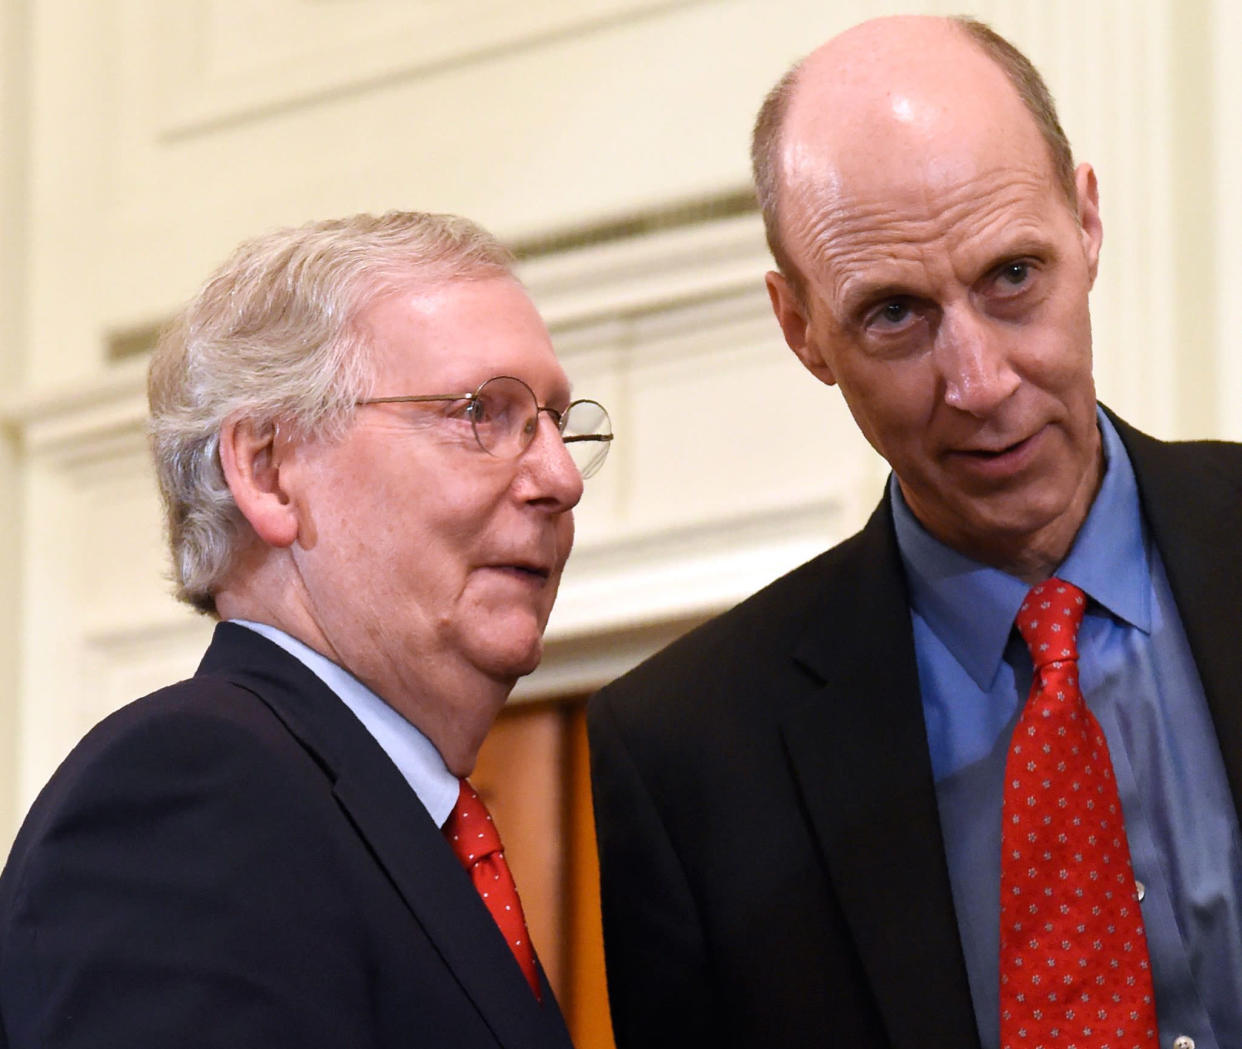 Senate Majority Leader Mitch McConnell, left, with lawyer and former Justice Department official Ed Whelan before the president's announcement of his Supreme Court nominee on July 9, 2018, in Washington, D.C. (Photo: Saul Loeb/AFP/Getty Images)